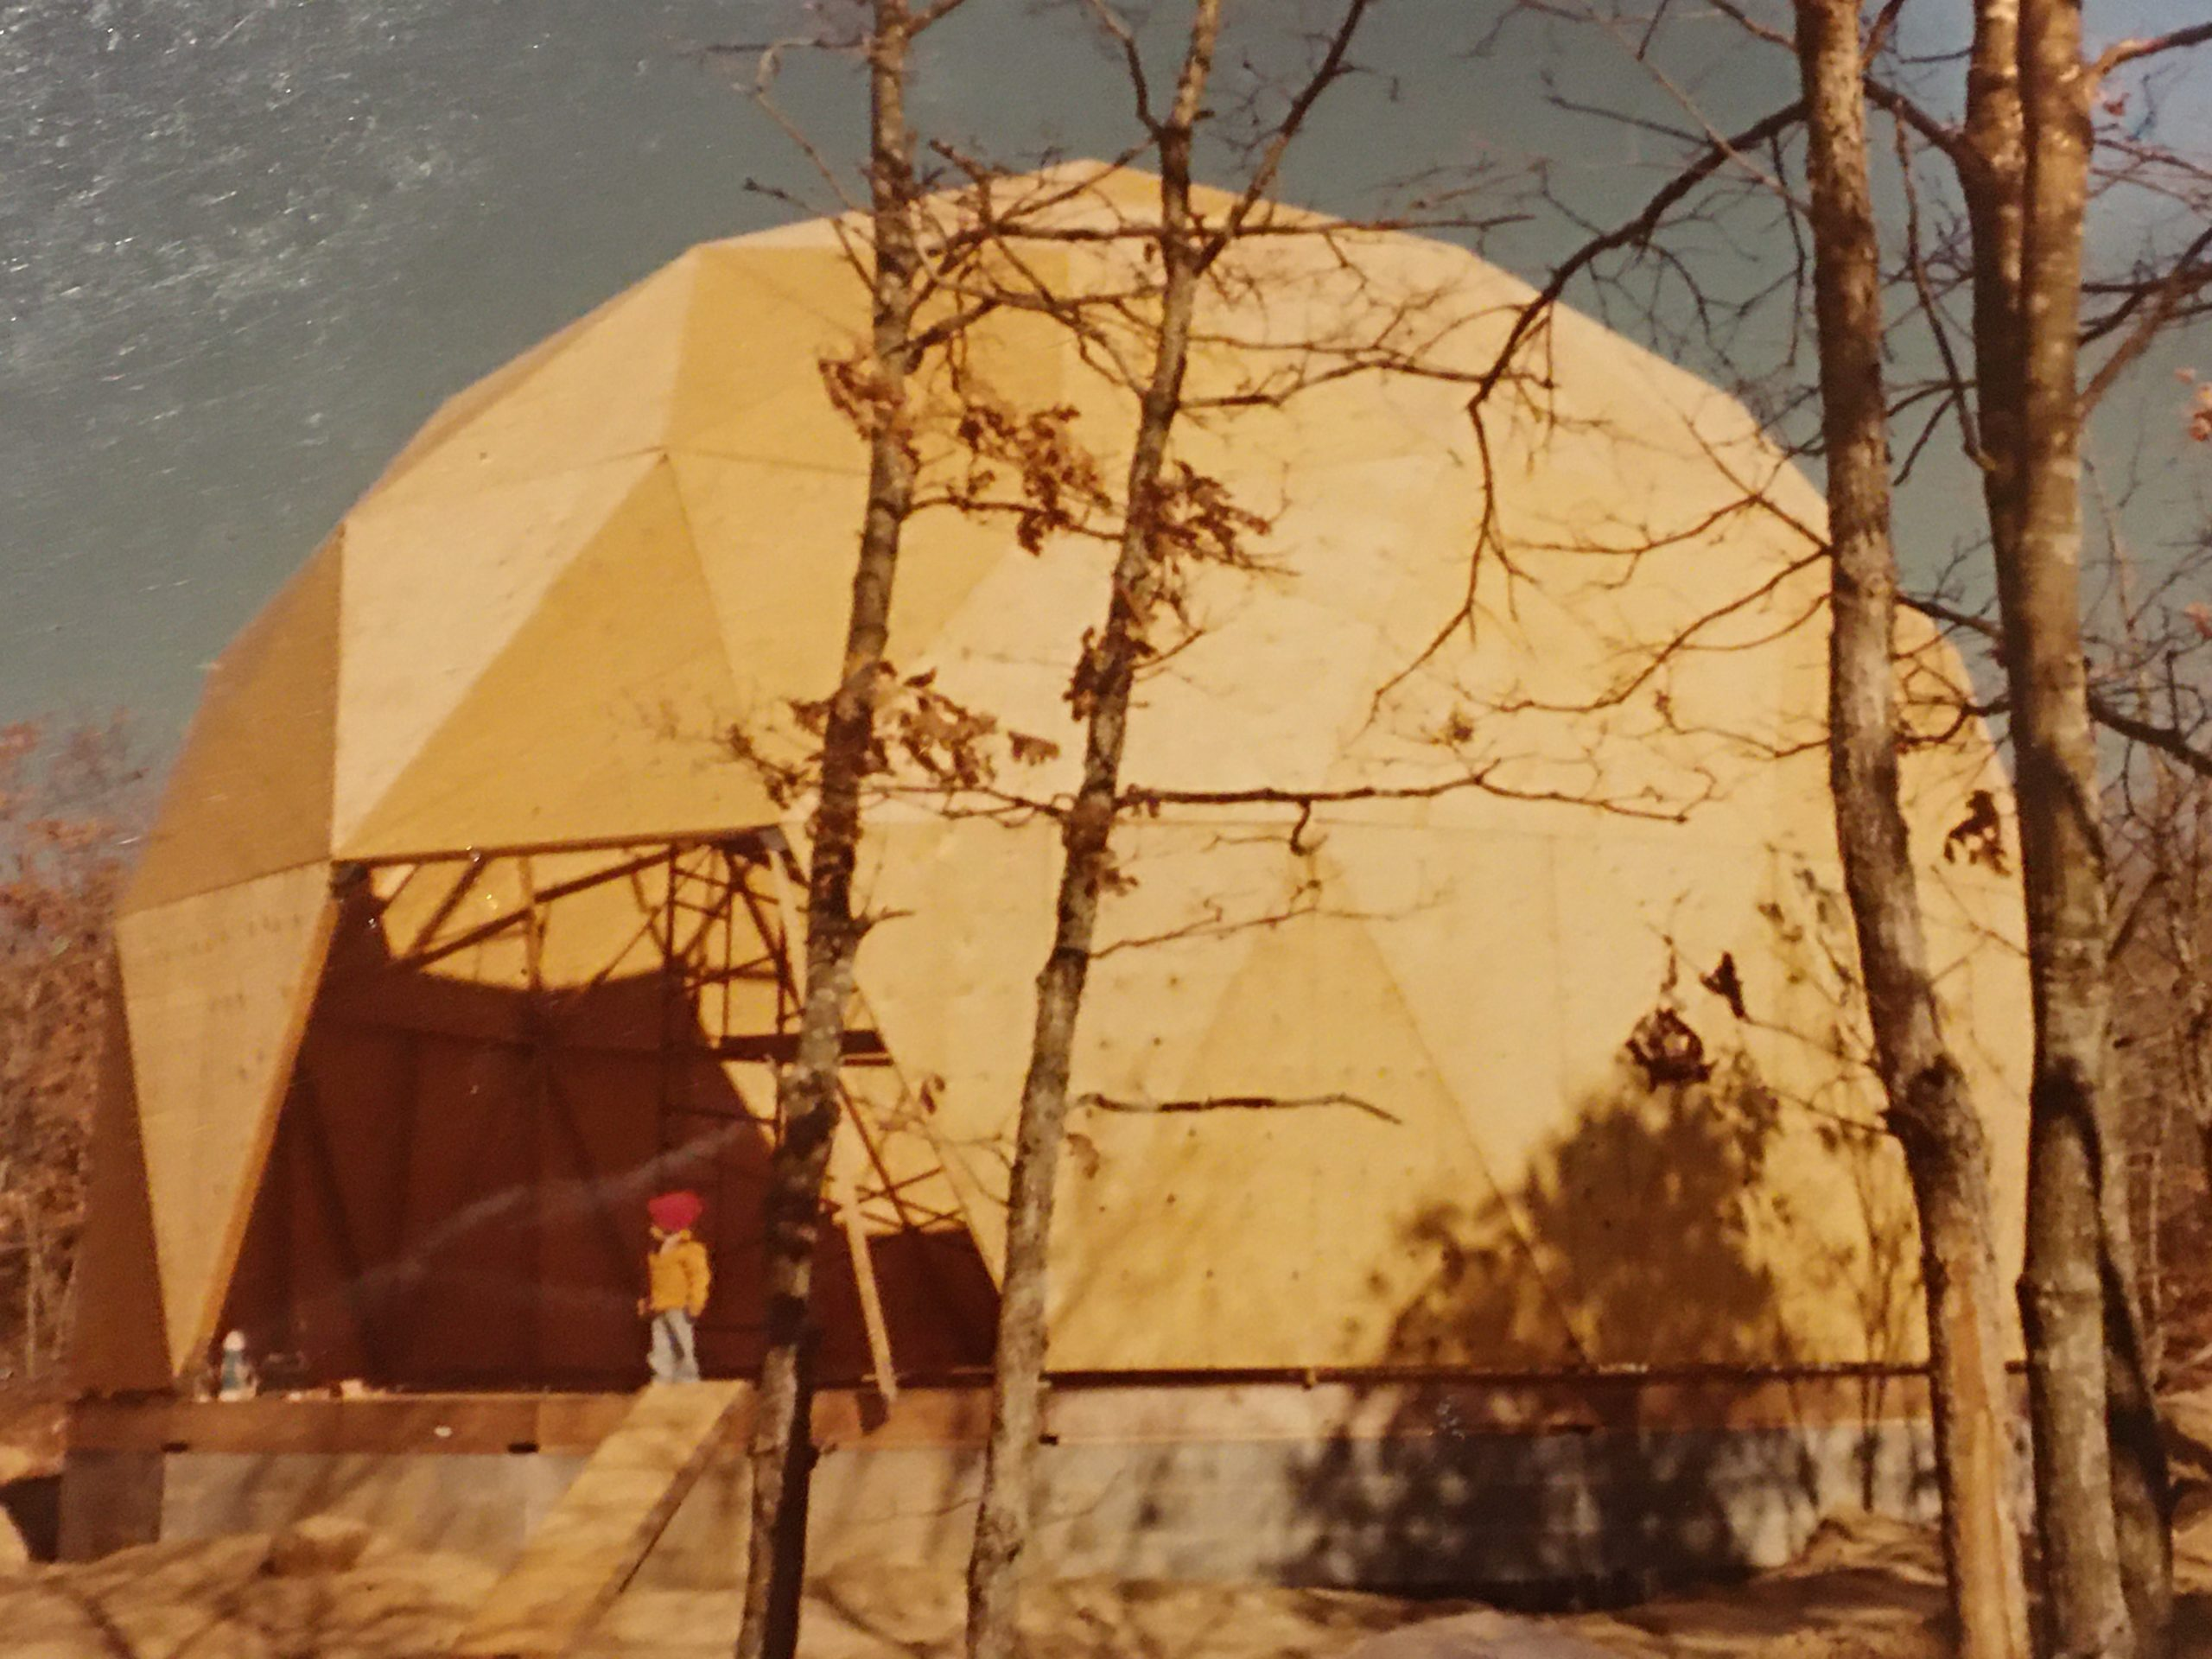 The frame of the dome, enclosed in plywood.